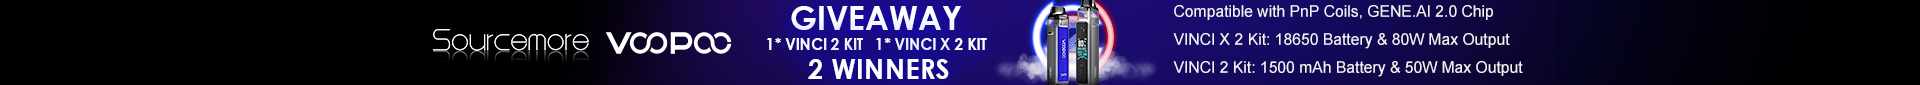 VOOPOO VINCI 2 and X 2 Kit Giveway Top Banner